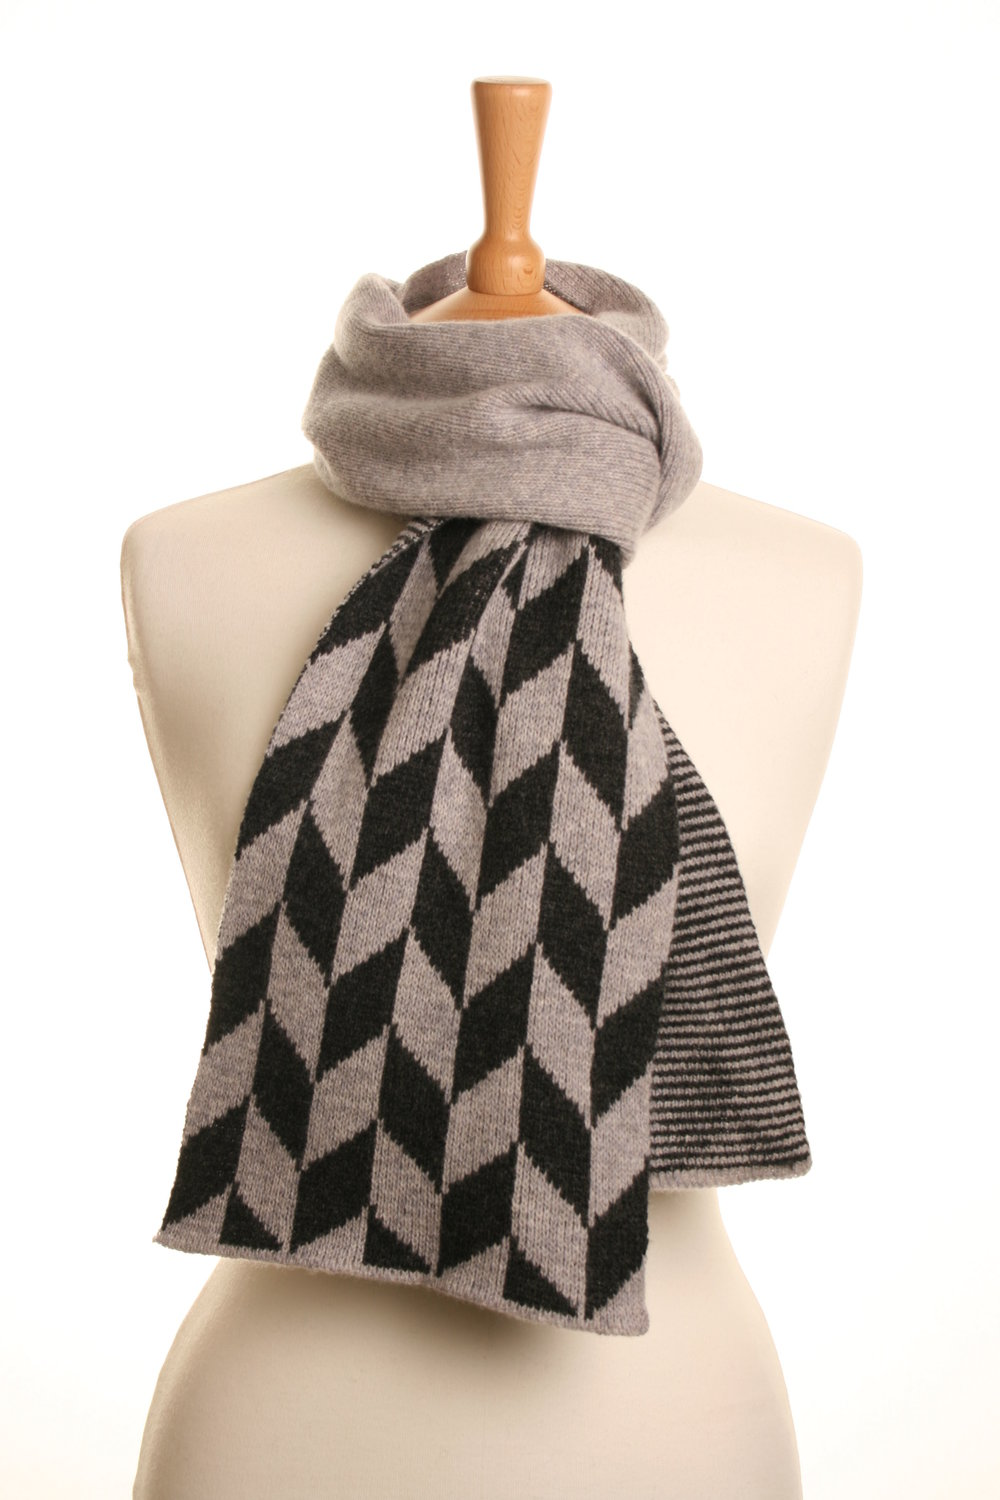 Grey Rhombus Scarf  Knitted Lambswool  £75